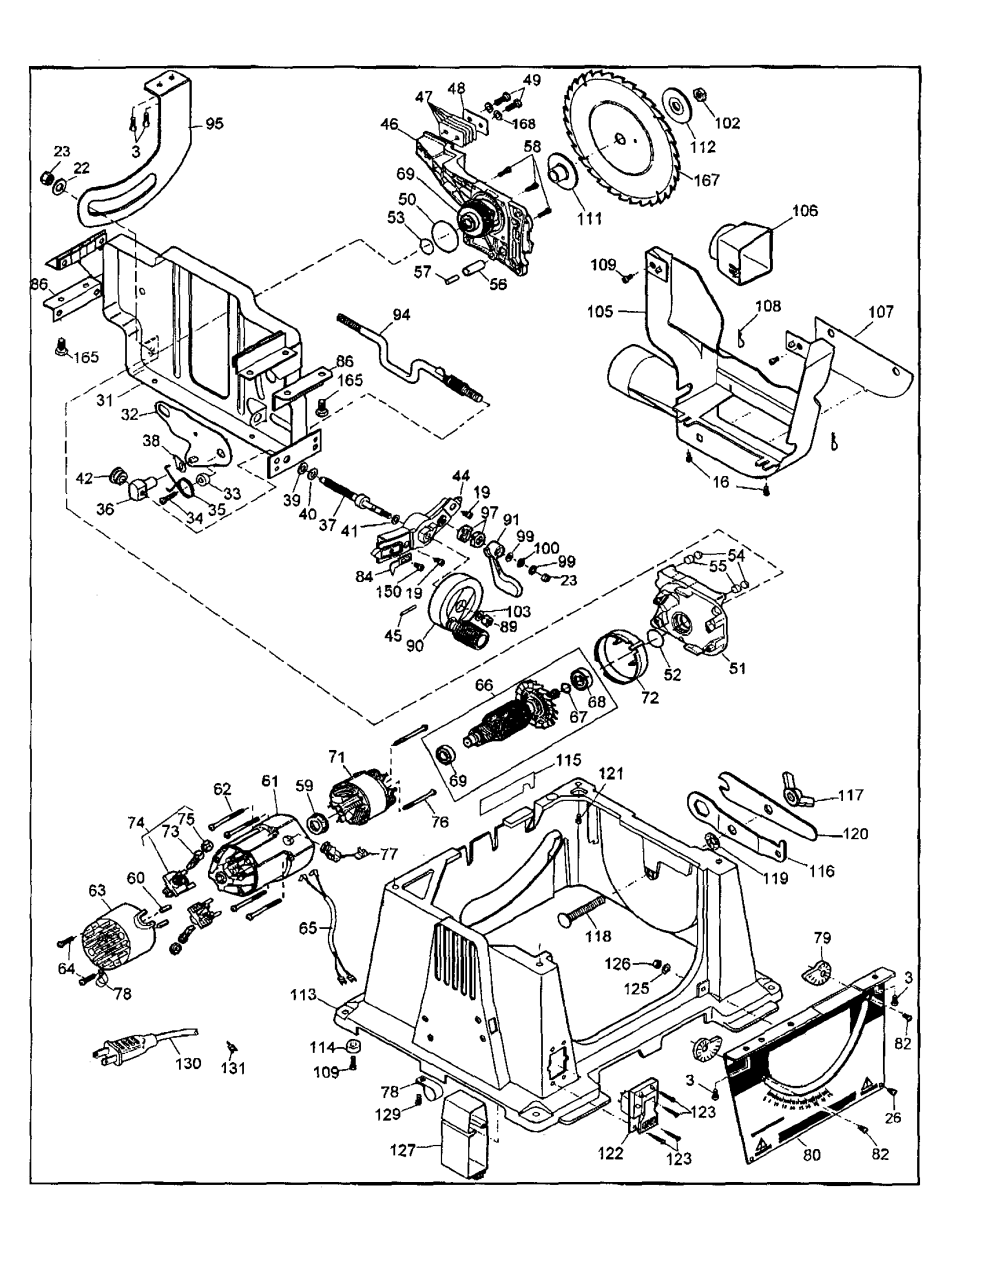 medium resolution of de walt table saw switch wiring wiring diagram for you miter saw de walt wiring diagrams on dewalt miter saw wiring diagram